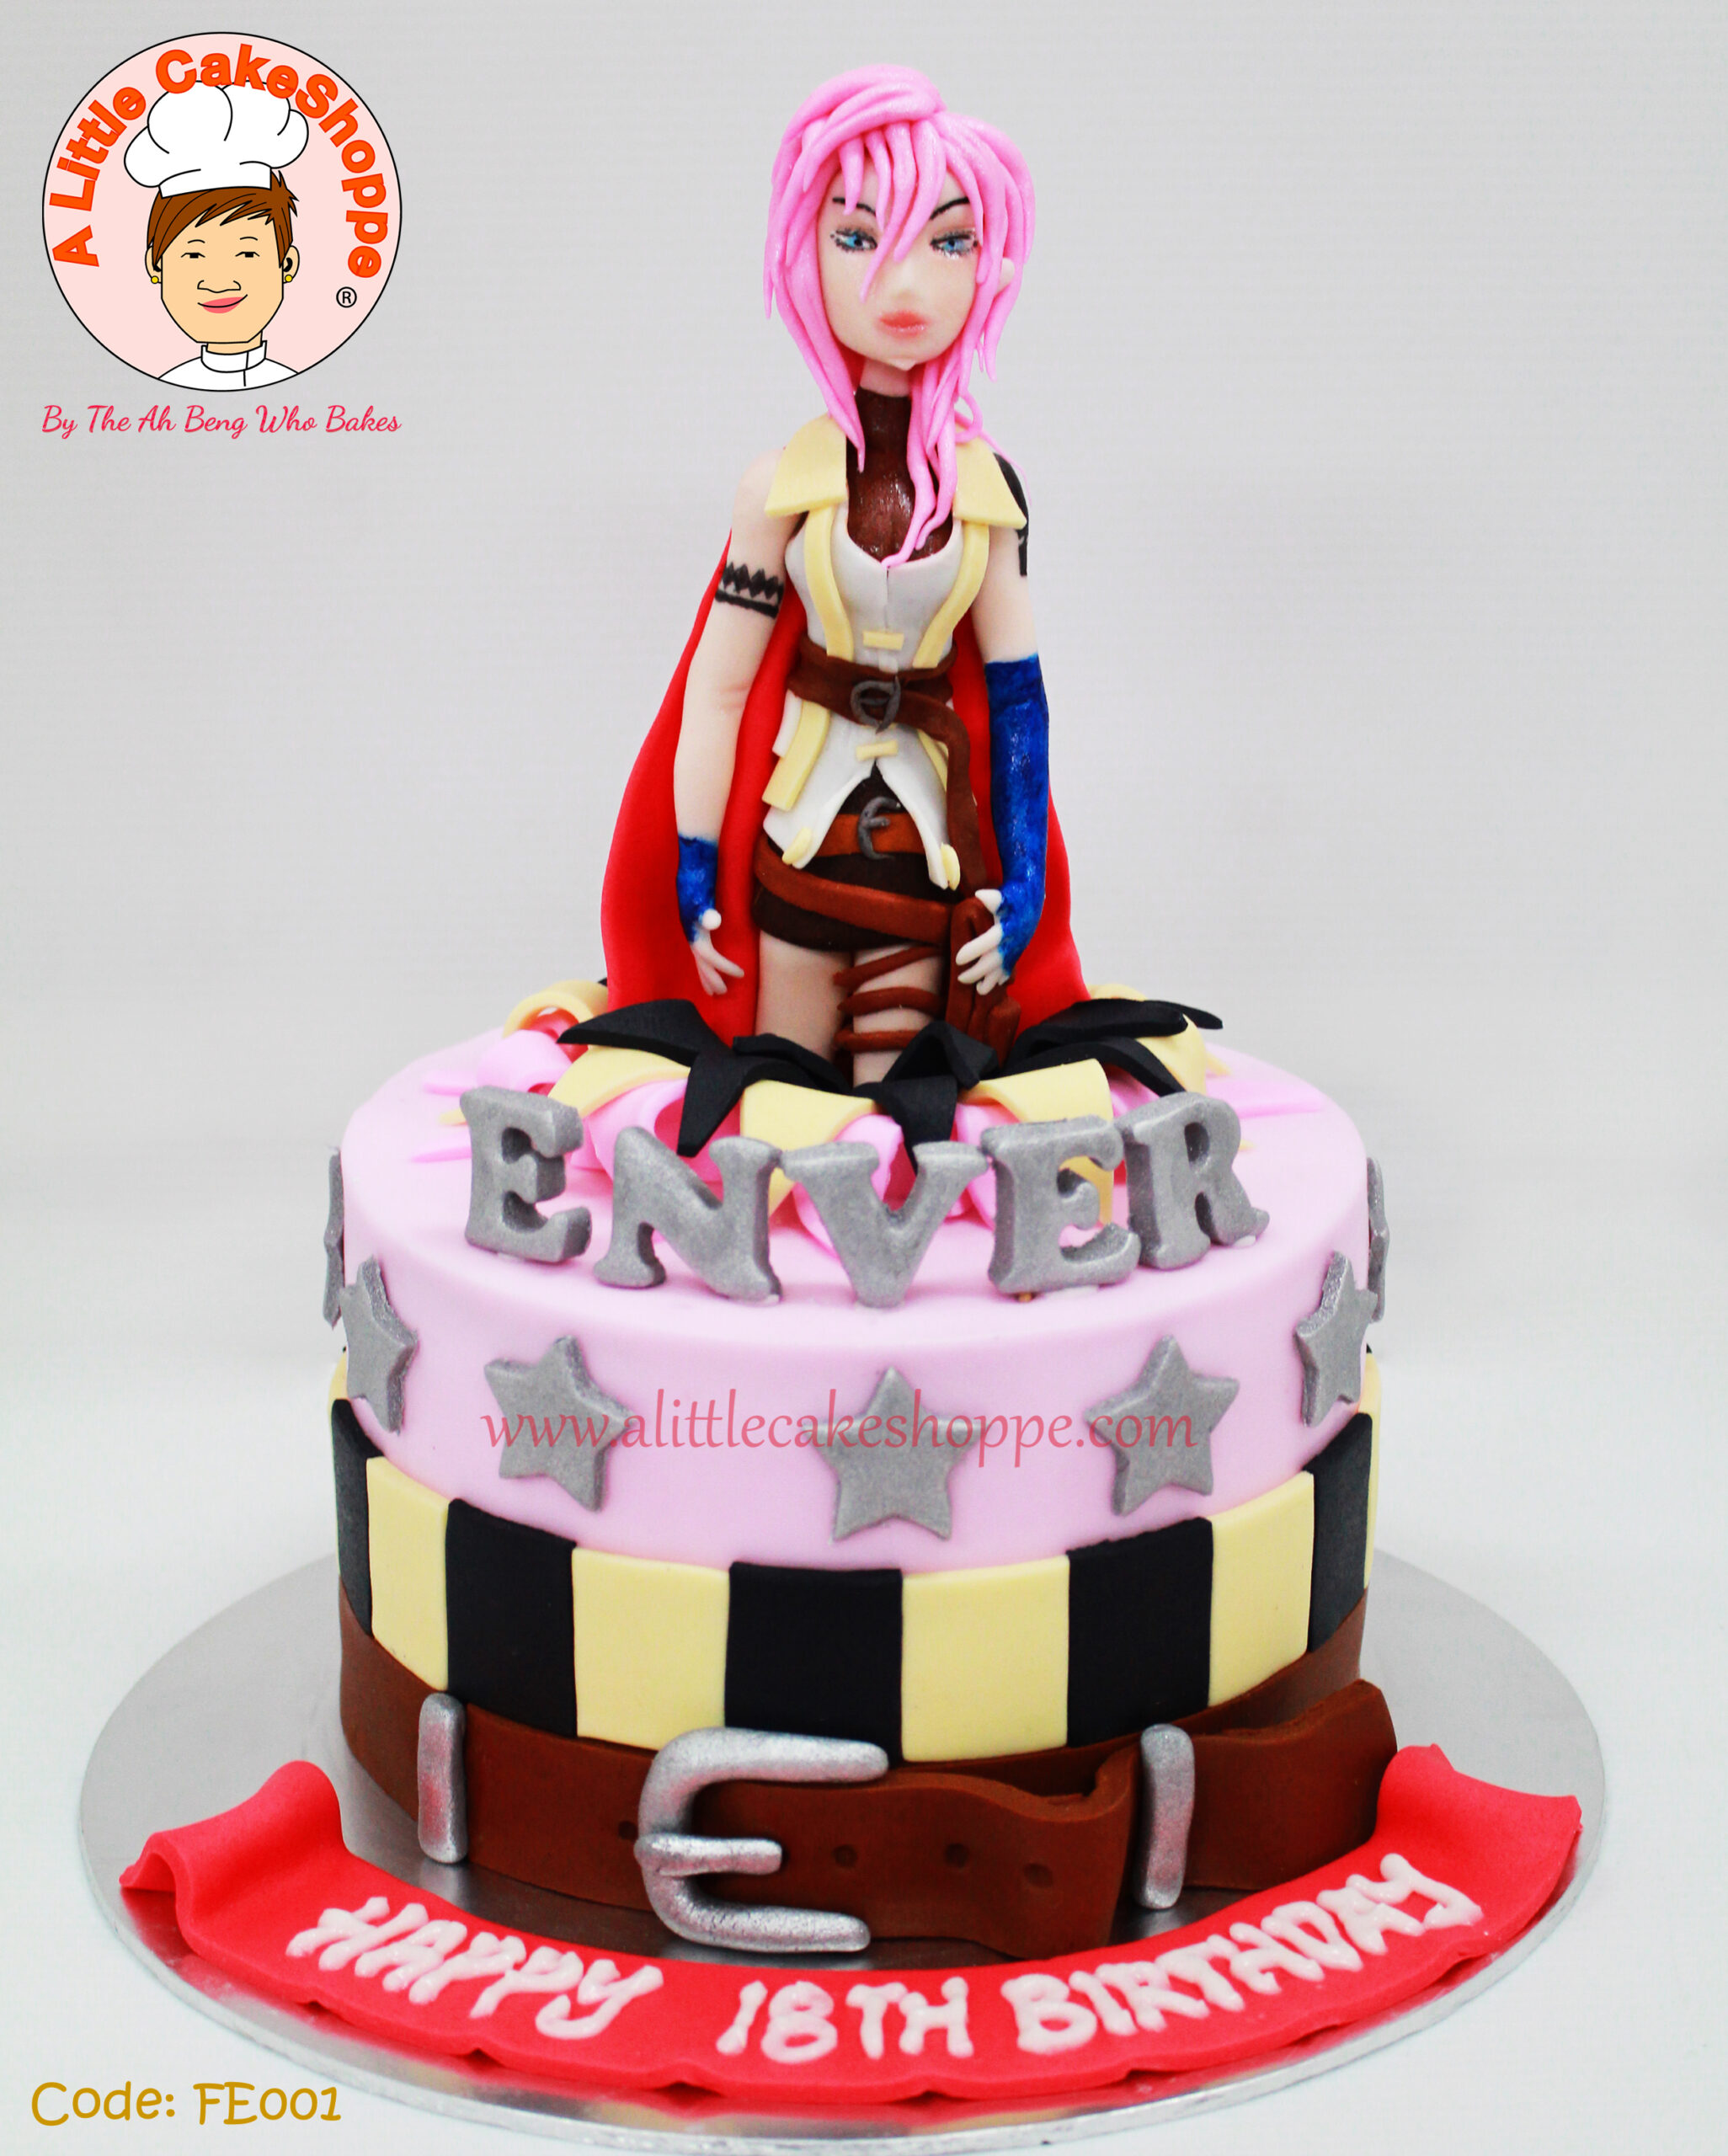 Best Customised Cake Shop Singapore custom cake 2D 3D birthday cake cupcakes desserts wedding corporate events anniversary 1st birthday 21st birthday fondant fresh cream buttercream cakes alittlecakeshoppe a little cake shoppe compliments review singapore bakers SG cake shop cakeshop ah beng who bakes final fantasy